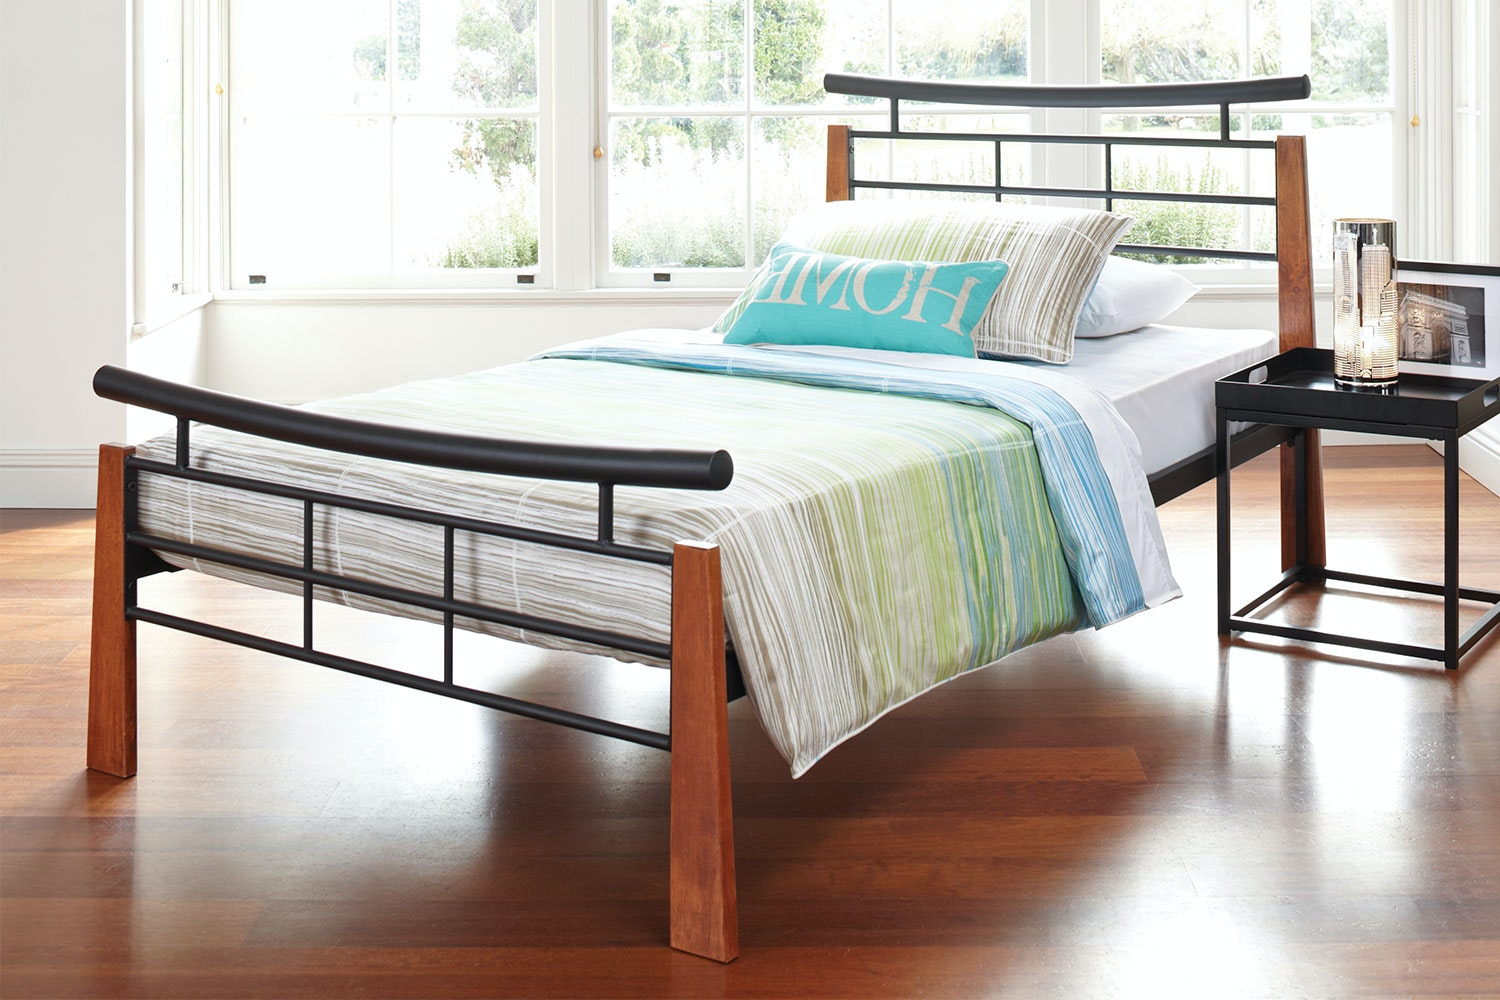 Kingsway King Single Bed Frame by Nero Furniture